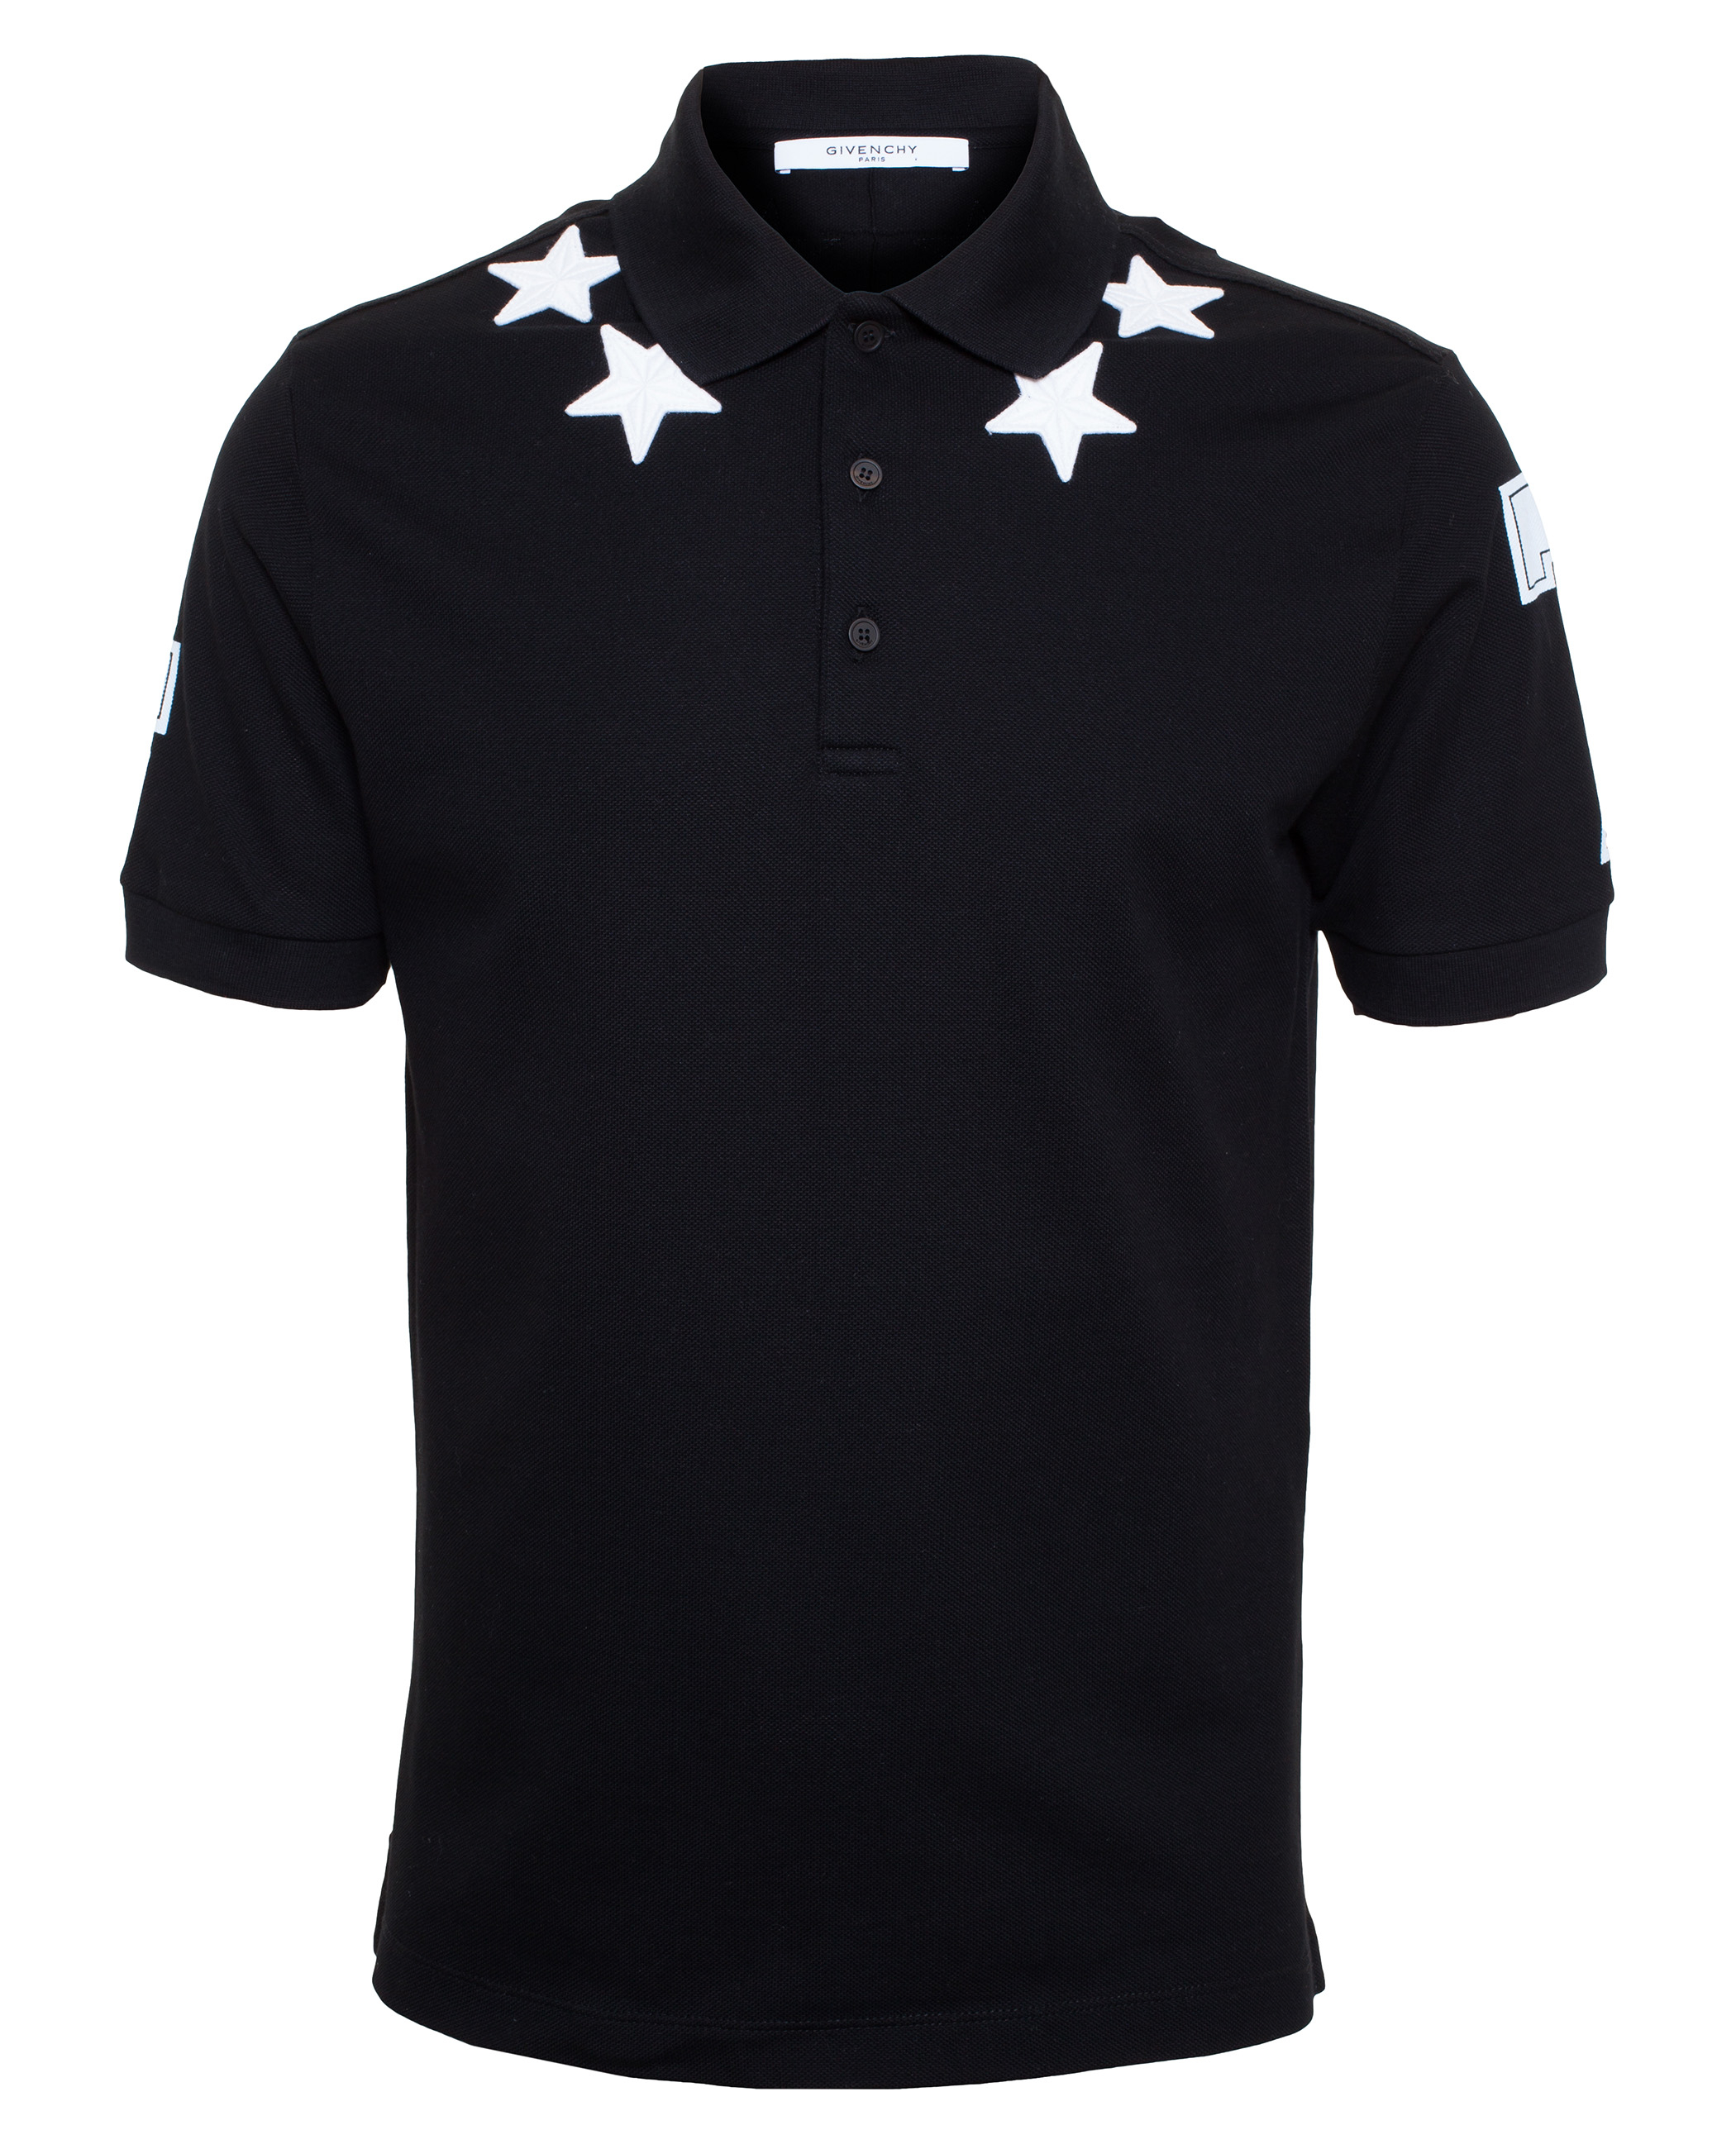 Givenchy Star Polo Shirt In Black For Men Lyst